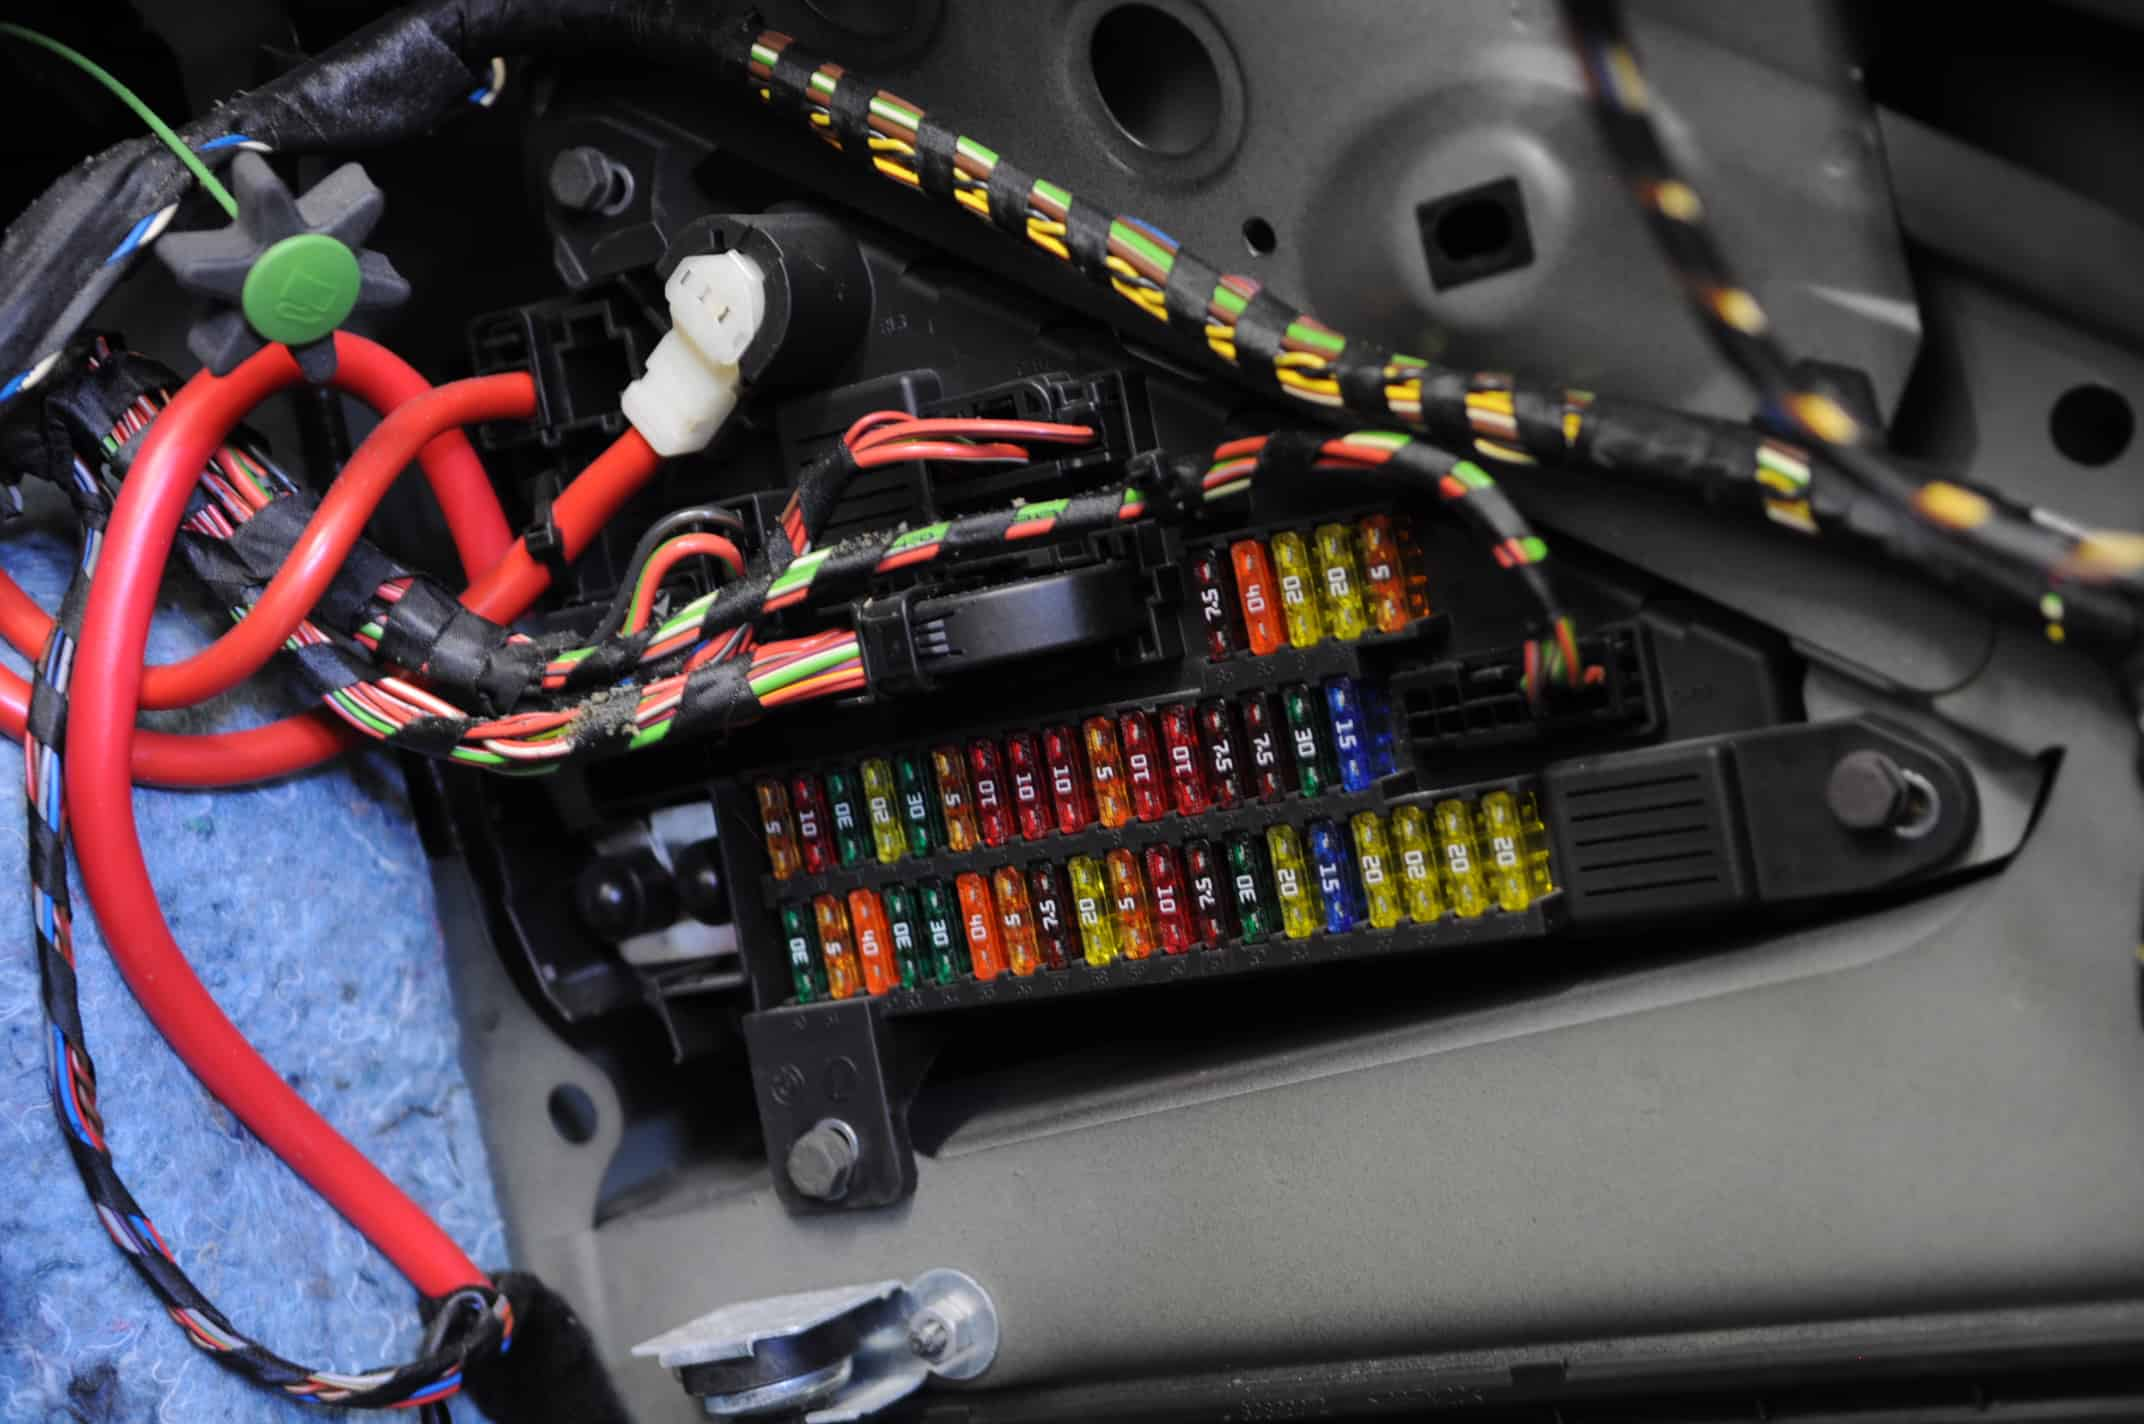 Bmw E60 M5 Battery Dead Draw Test Pull Fuses One By One Till The